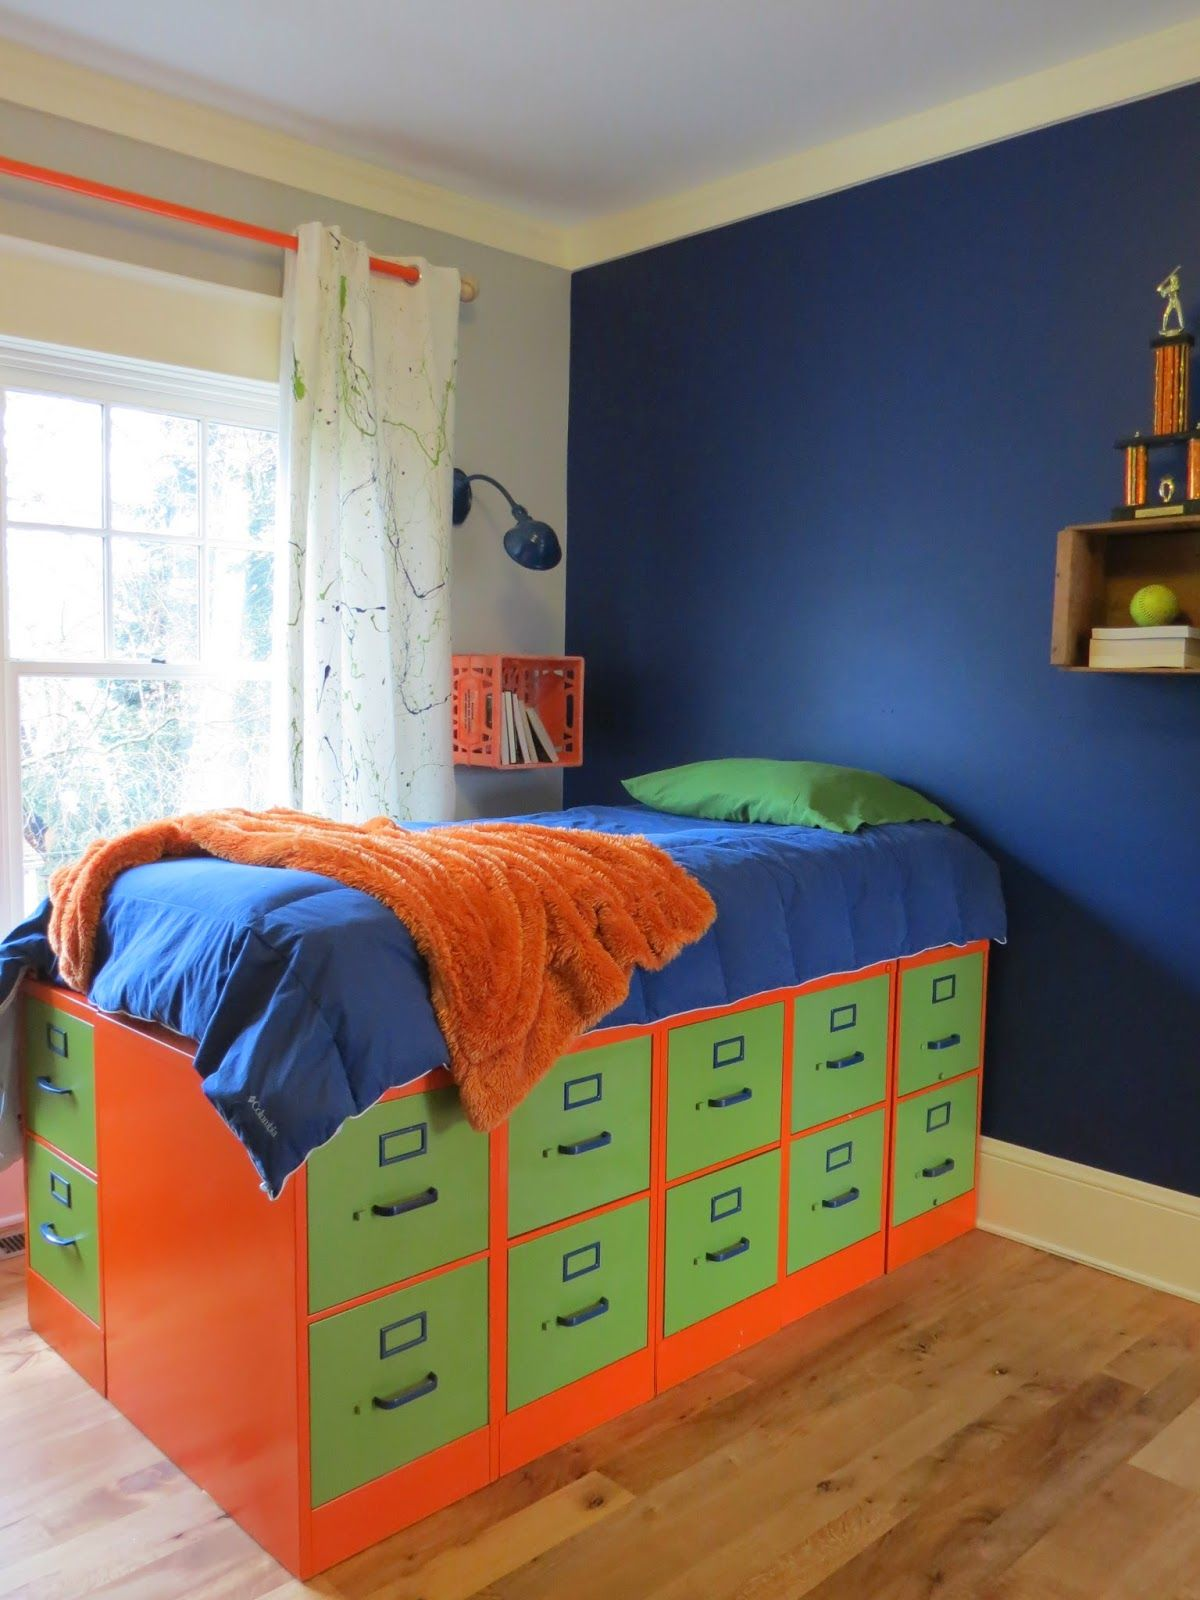 Homemade loft bed ideas  Nice job We just thought of this and I knew someone must have done